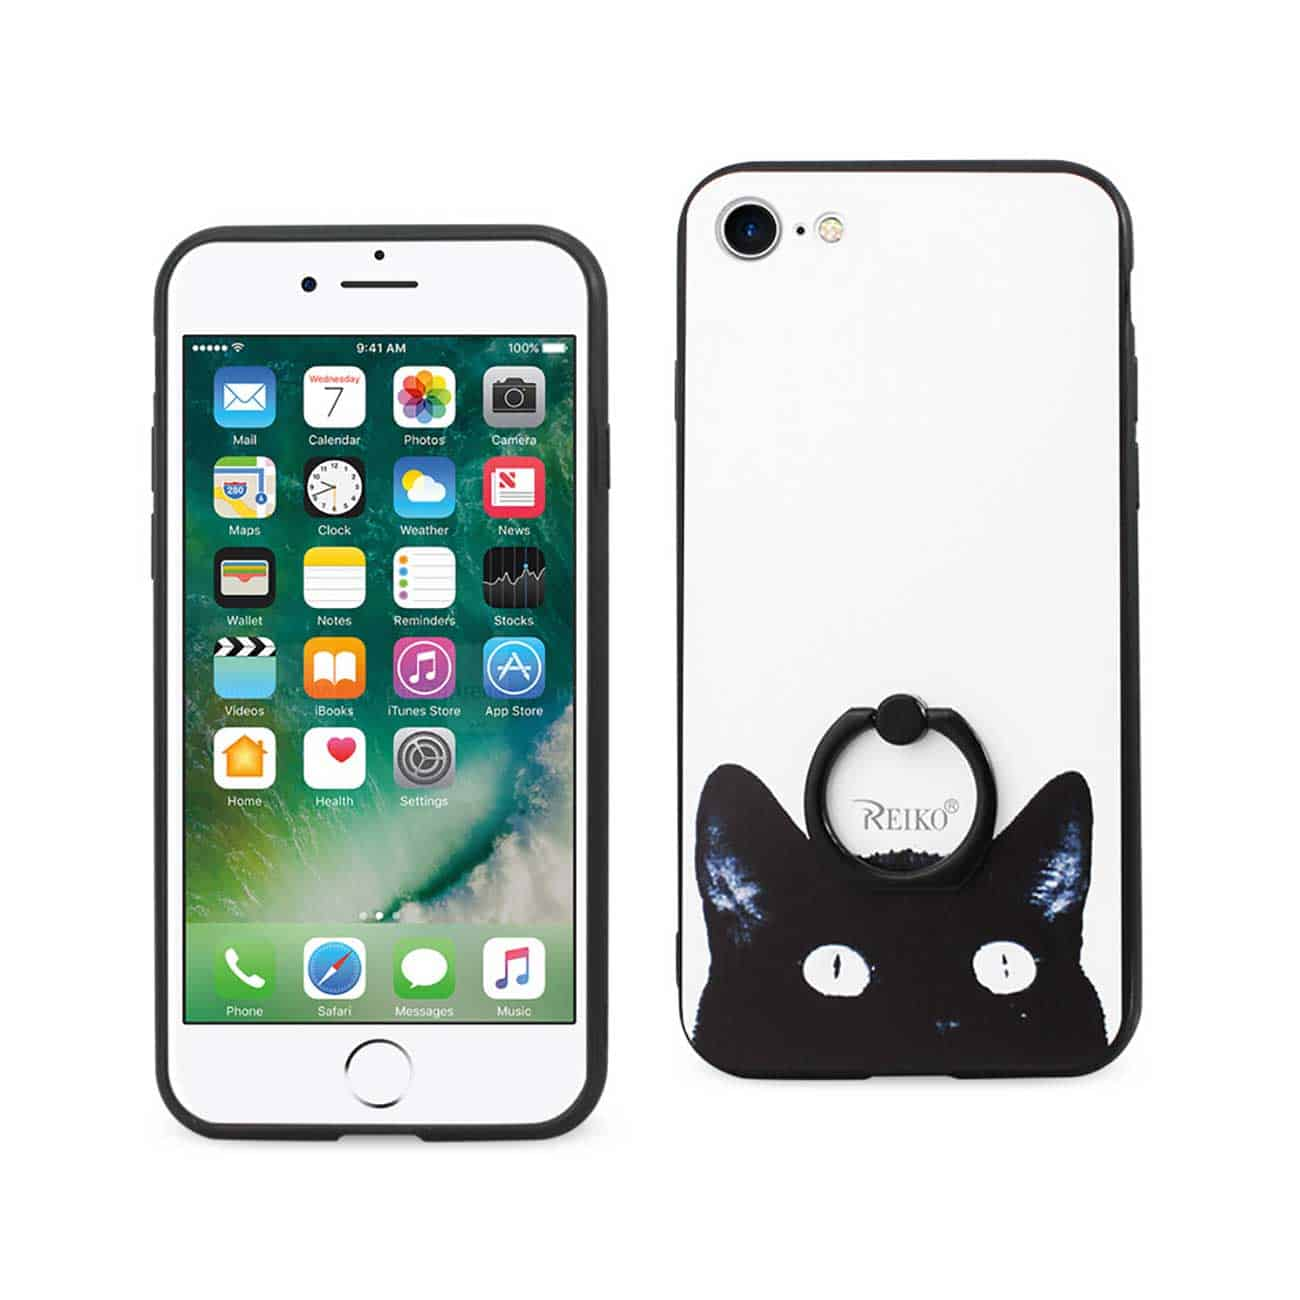 IPHONE 7/ 6/ 6S CAT DESIGN CASE WITH ROTATING RING STAND HOLDER IN MIX